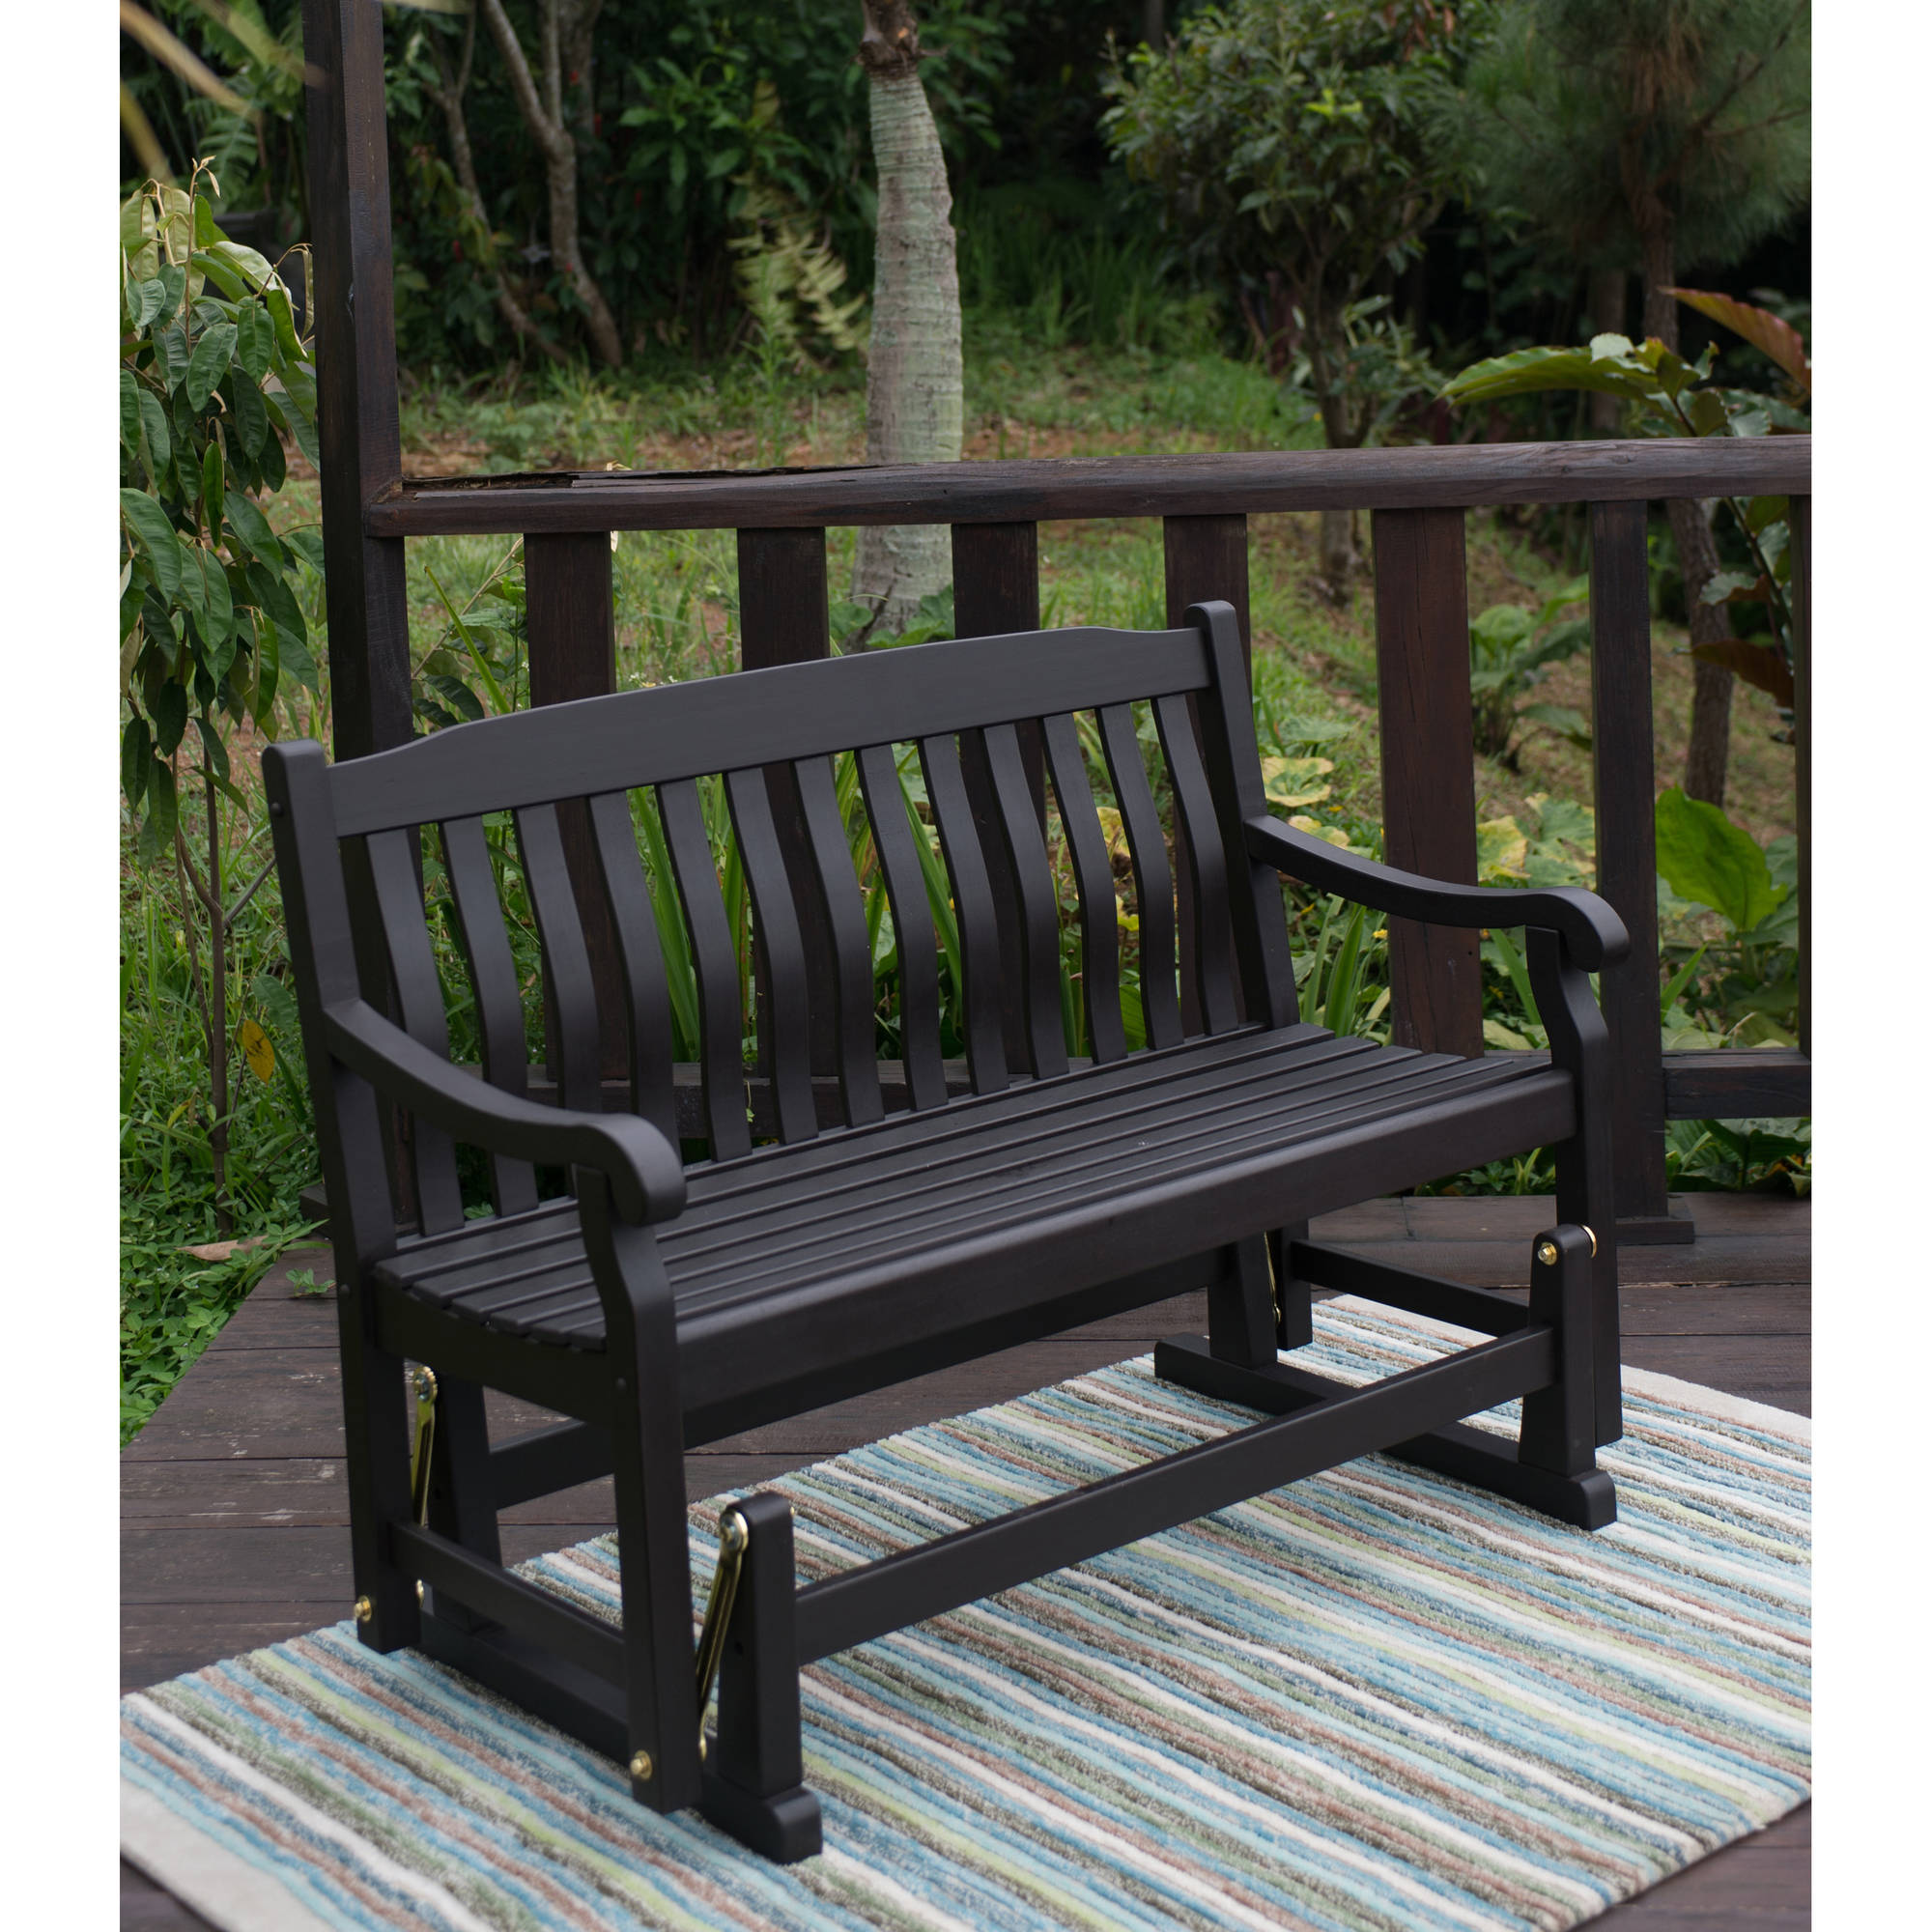 Strange Better Homes Gardens Delahey Outdoor Glider Bench Dark Brown Walmart Com Lamtechconsult Wood Chair Design Ideas Lamtechconsultcom